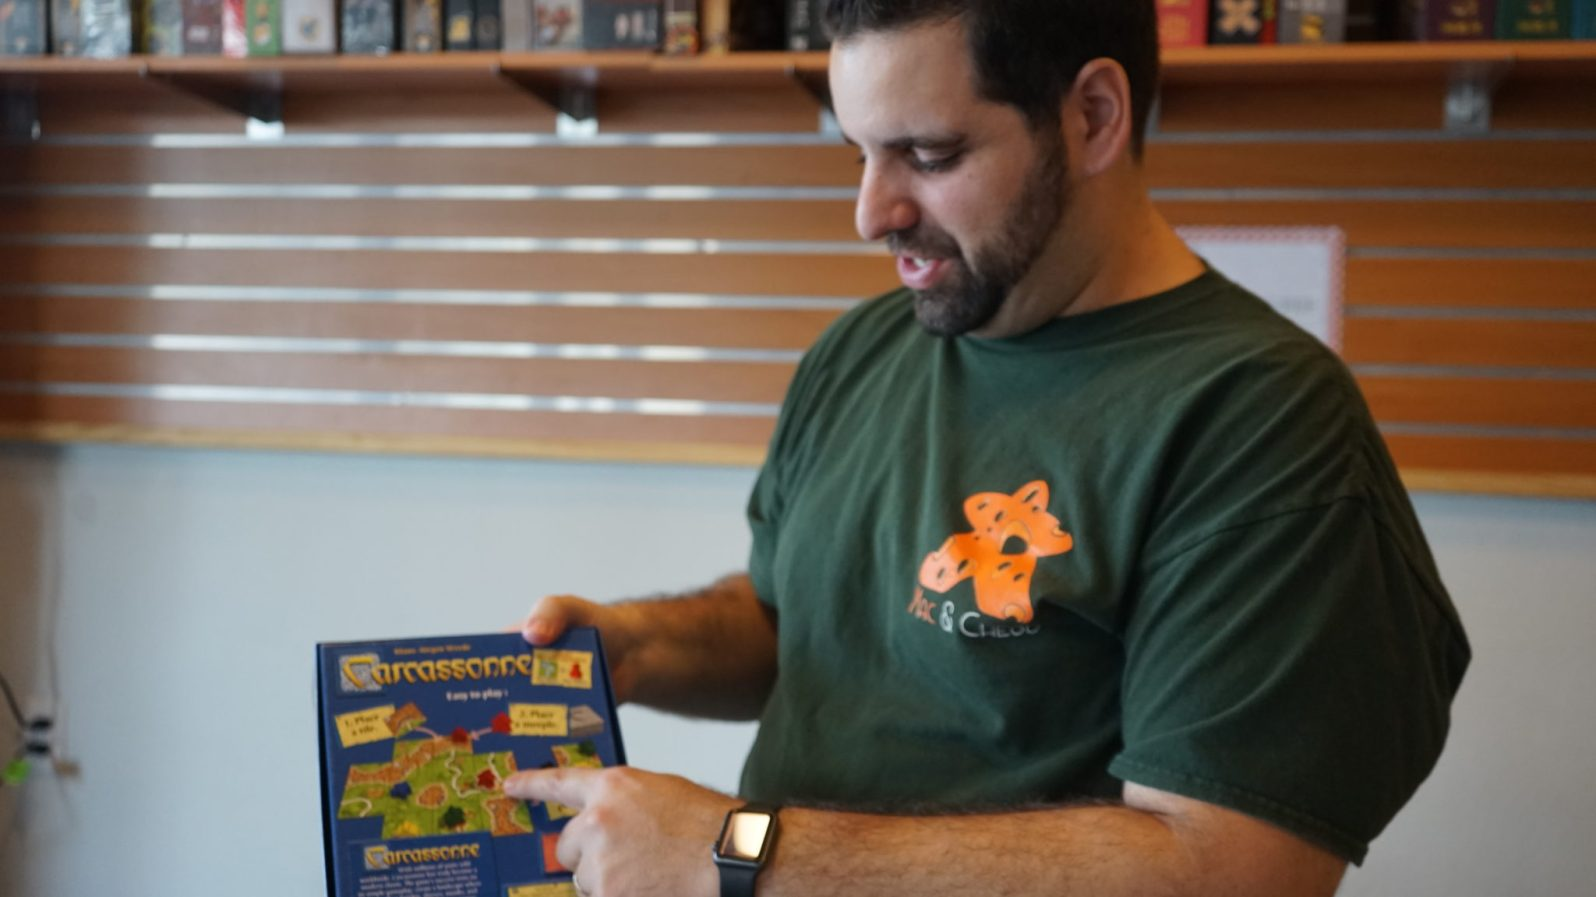 man explaining a board game, Carcassonne